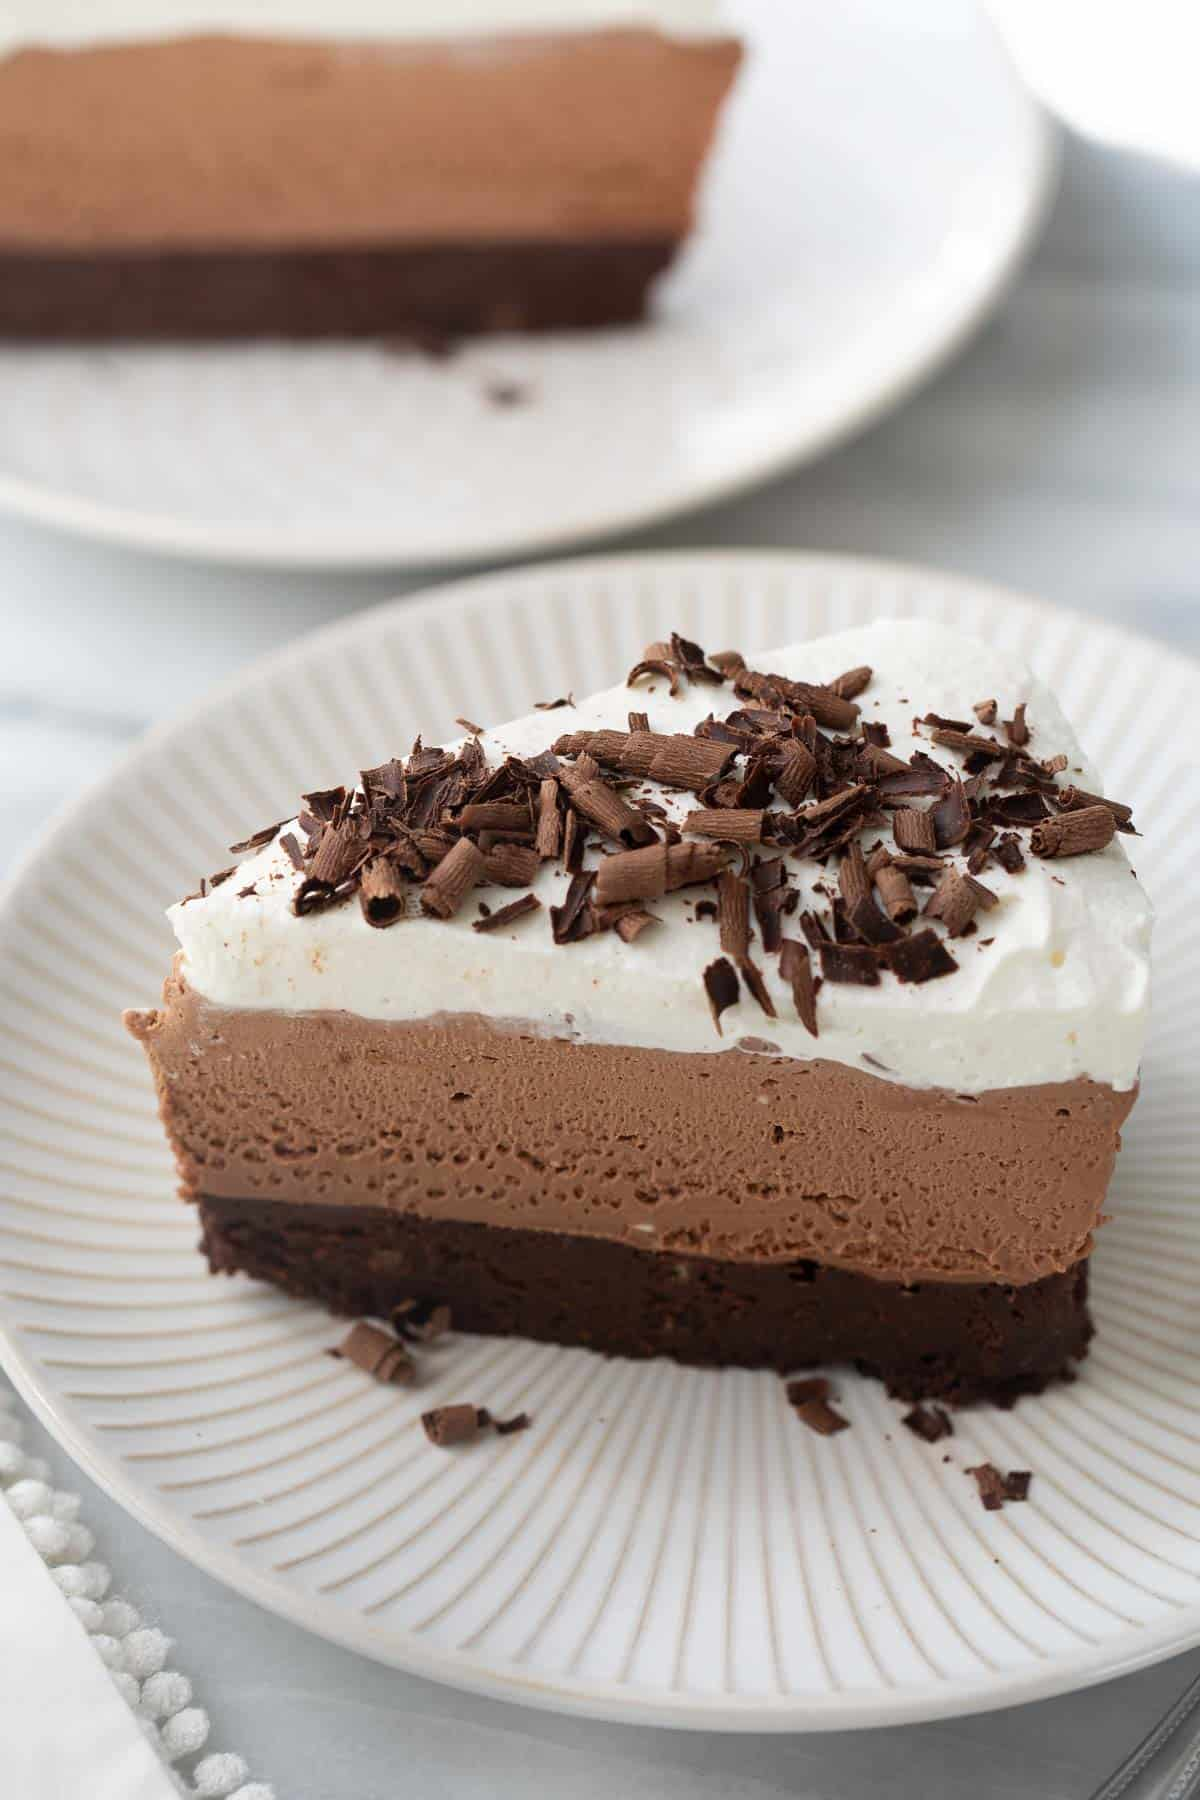 slice of chocolate mousse cake on white plate topped with chocolate shavings